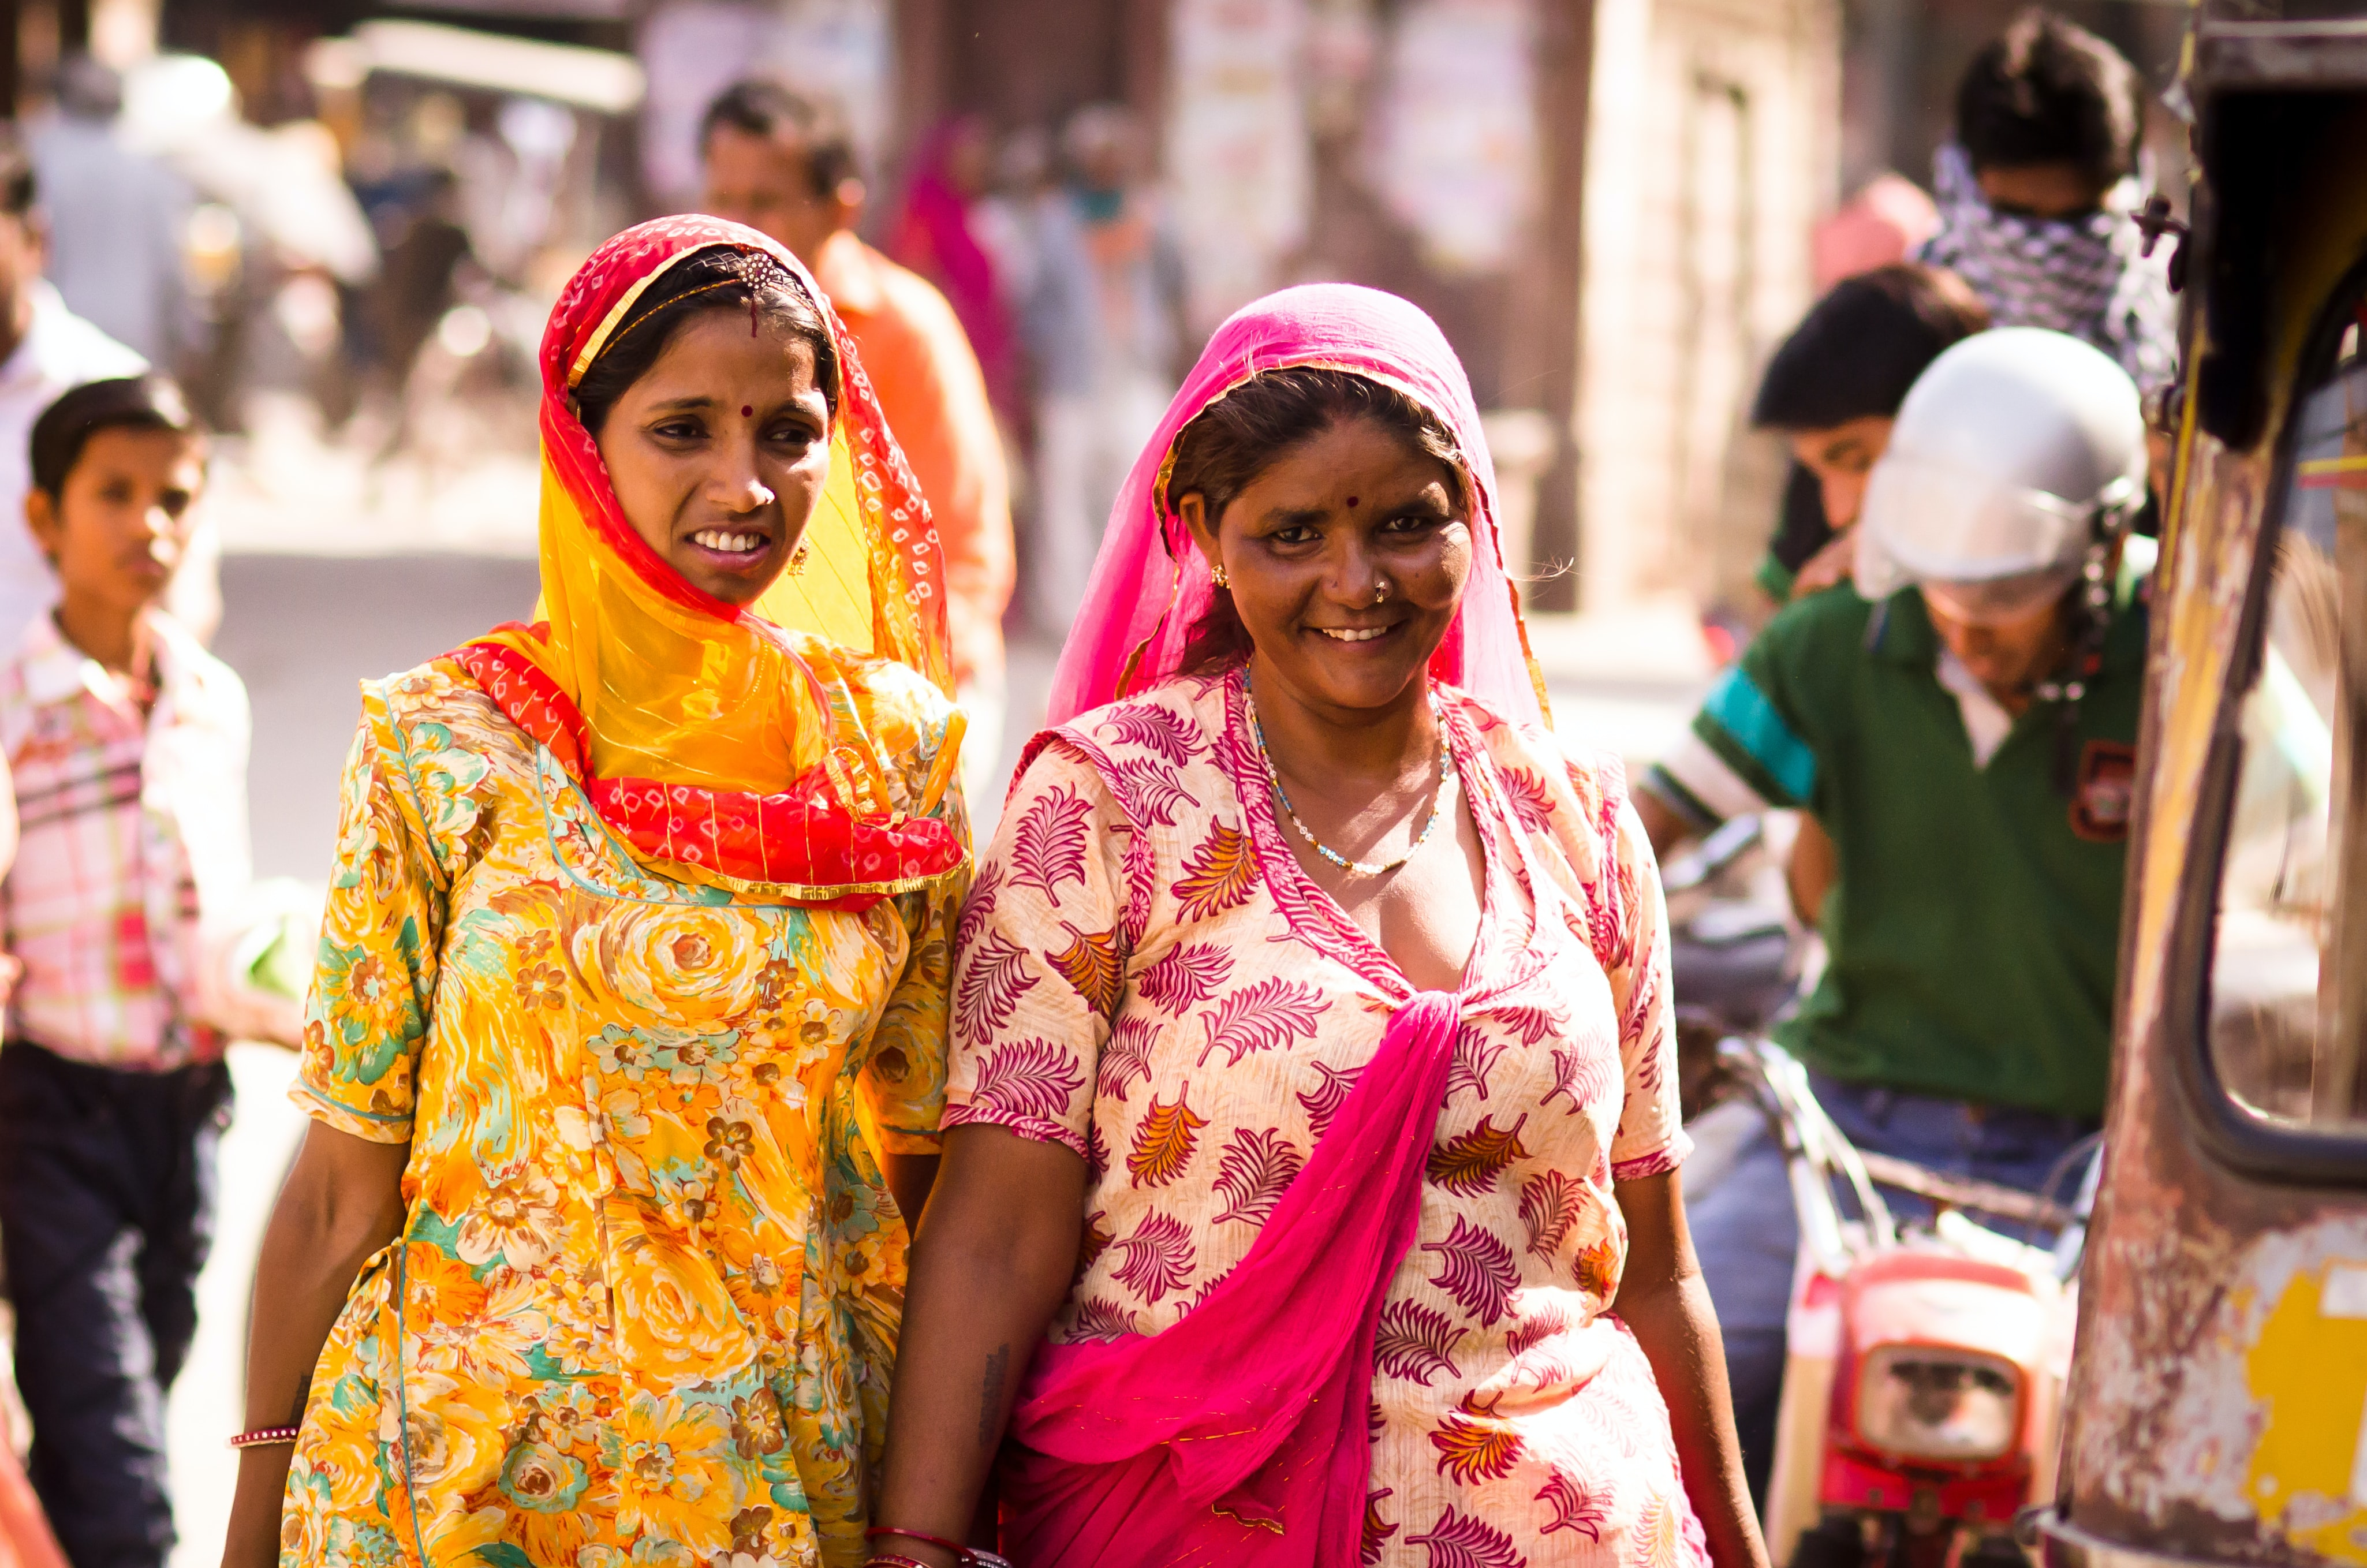 two women wearing traditional dress walking on street while smiling during daytime